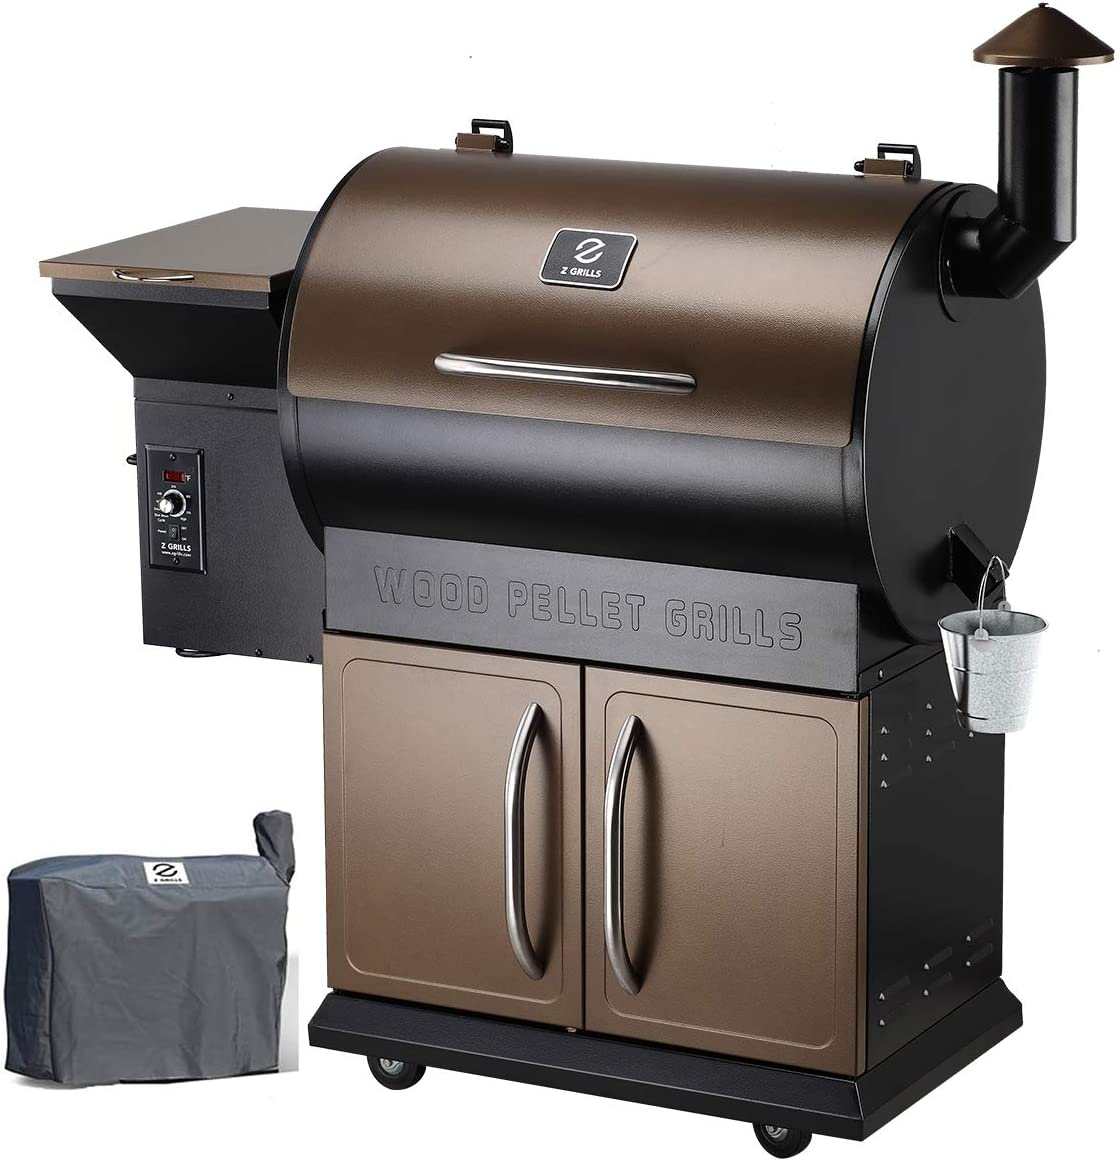 Z Grills 700D Wood Pellet Grill Smoker - Most Multifunction